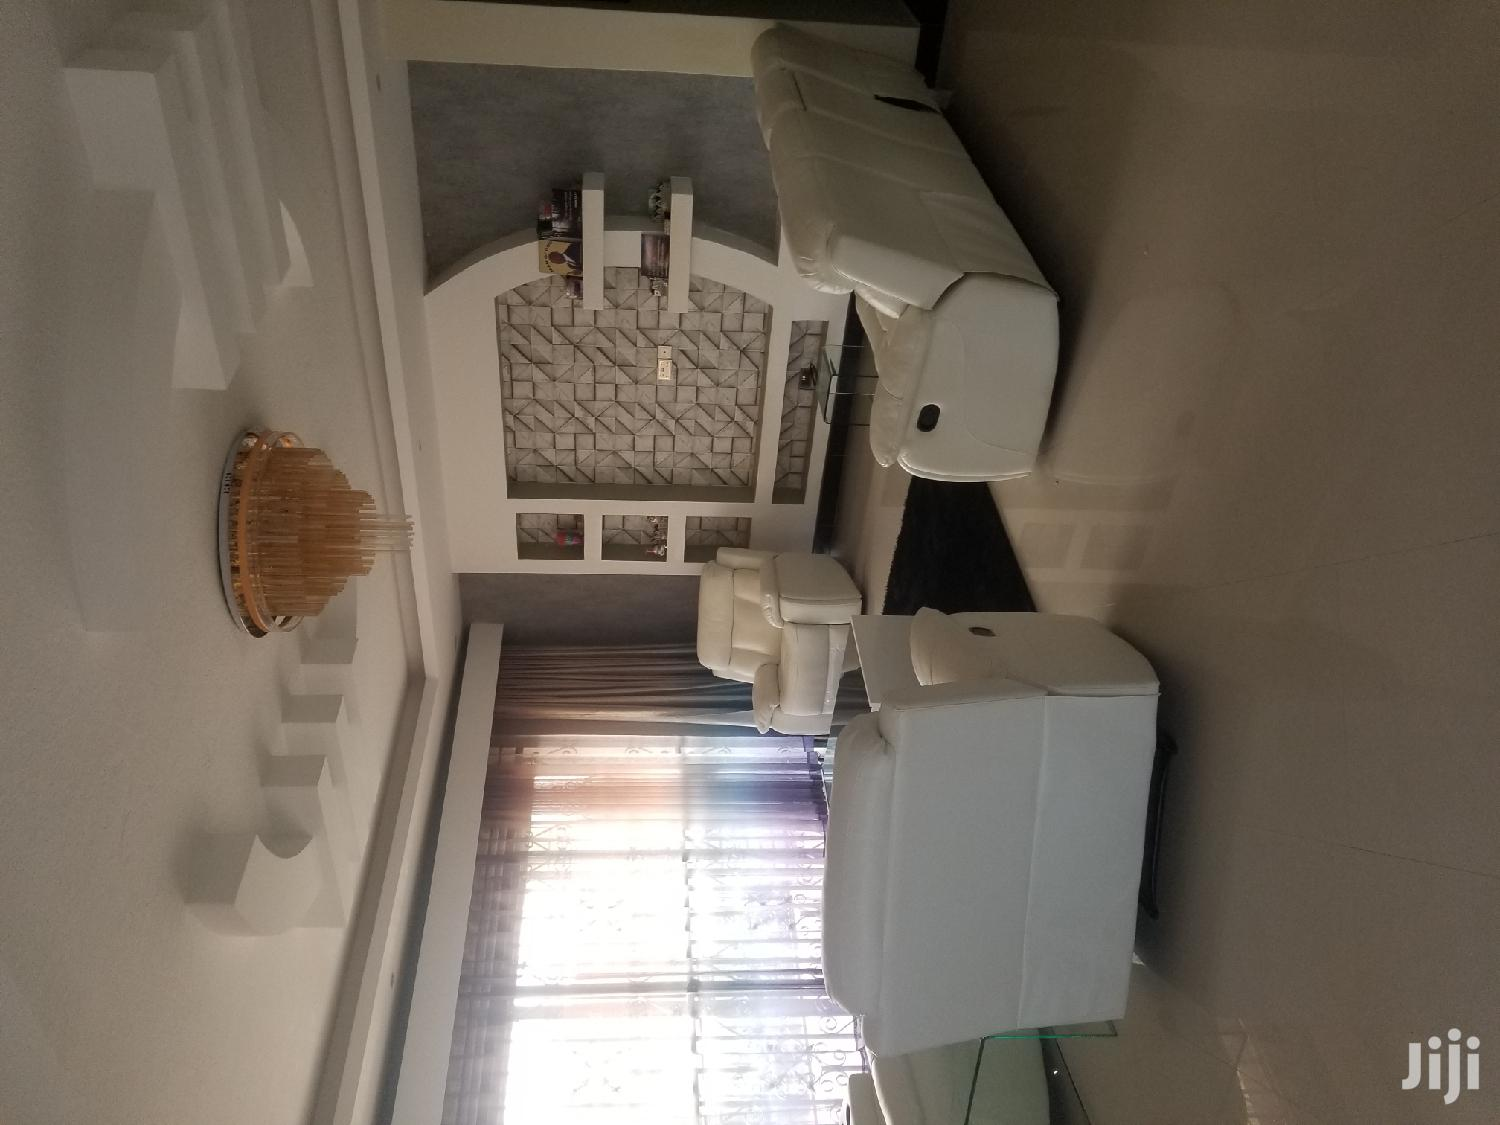 Najjera Six Bedrooms House for Sale With Ready Land Title | Houses & Apartments For Sale for sale in Kampala, Central Region, Uganda